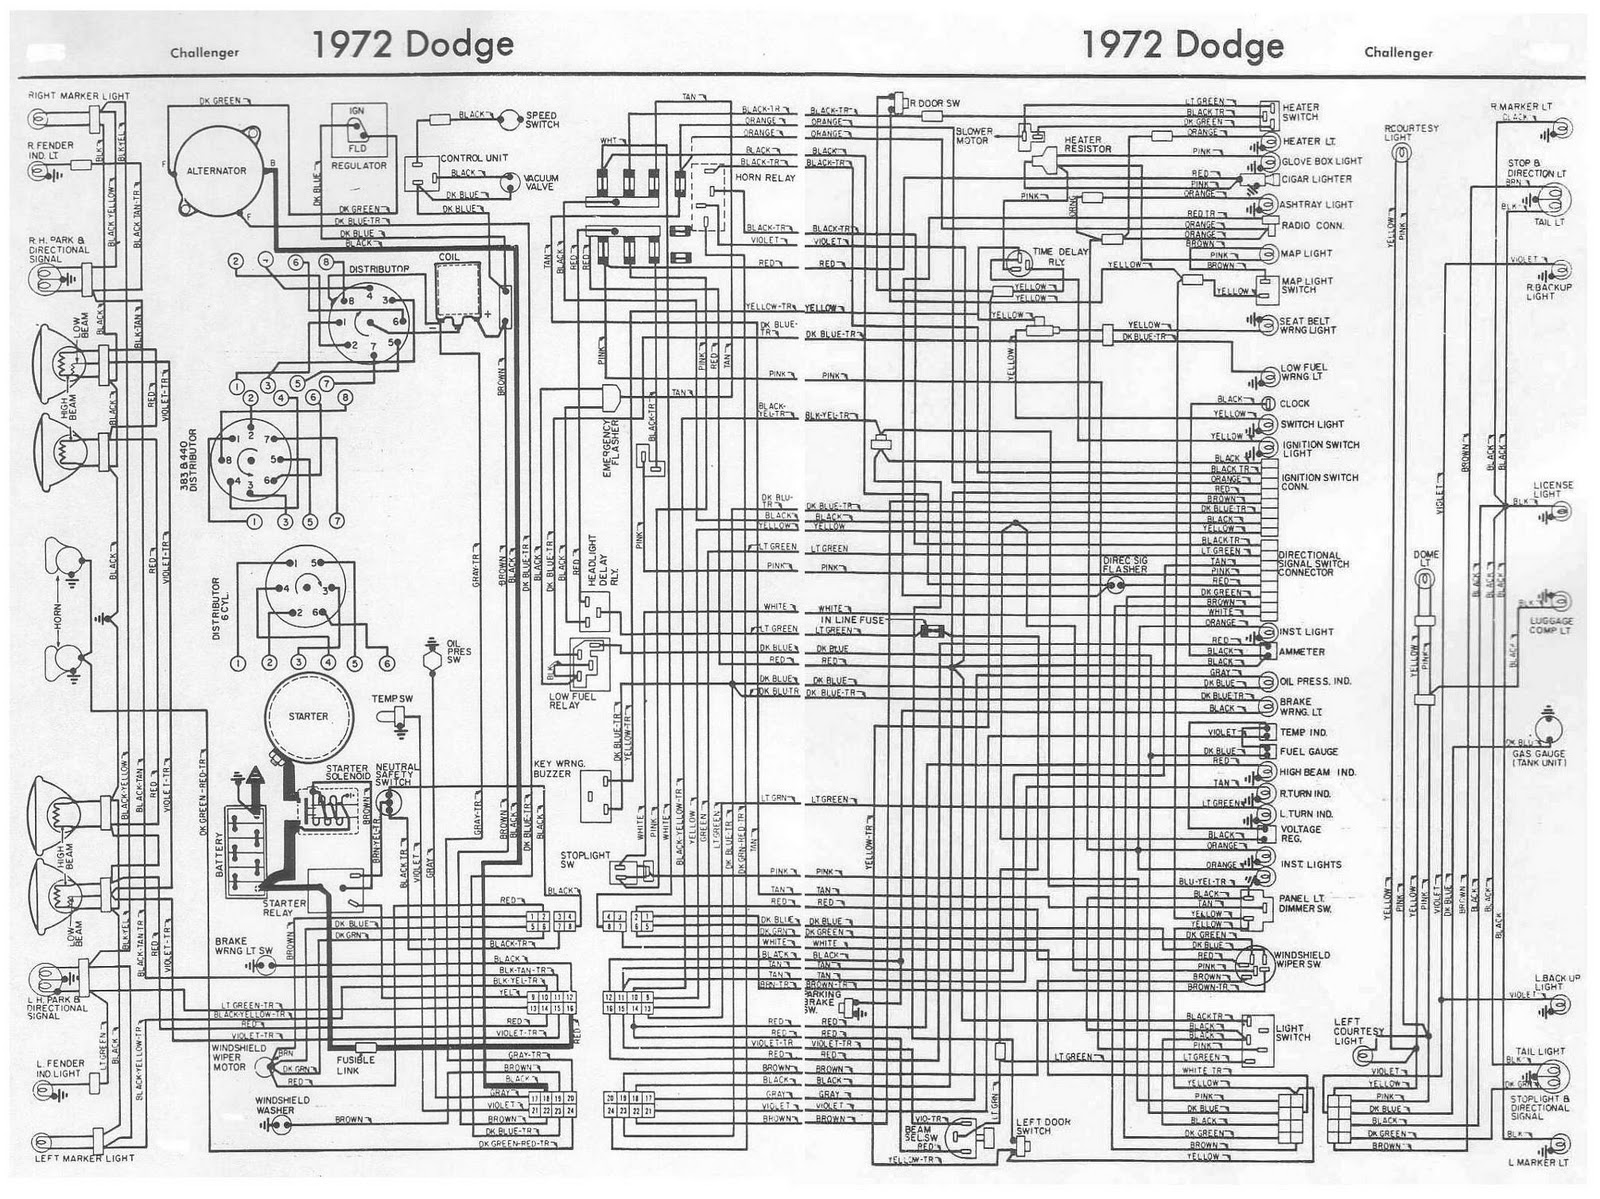 2009 Dodge Challenger Radio Wiring - Wiring Diagrams Hubs on challenger engine diagram, challenger cable, challenger parts diagram, challenger headlights, challenger circuit breaker,